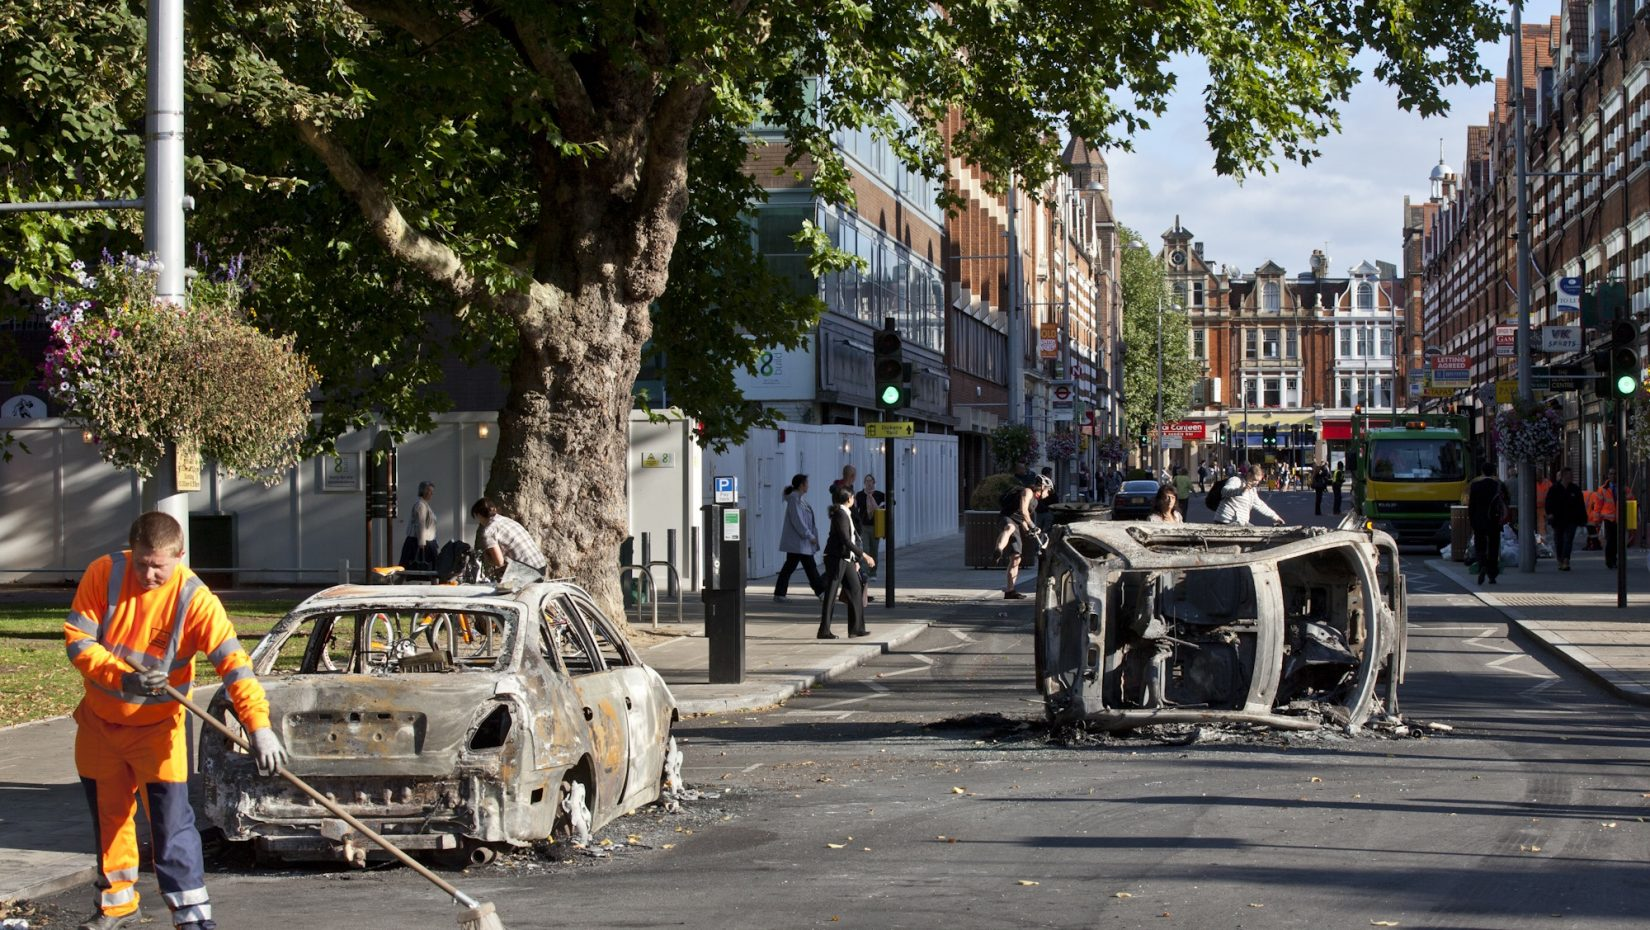 Aftermath of the riots in 2011